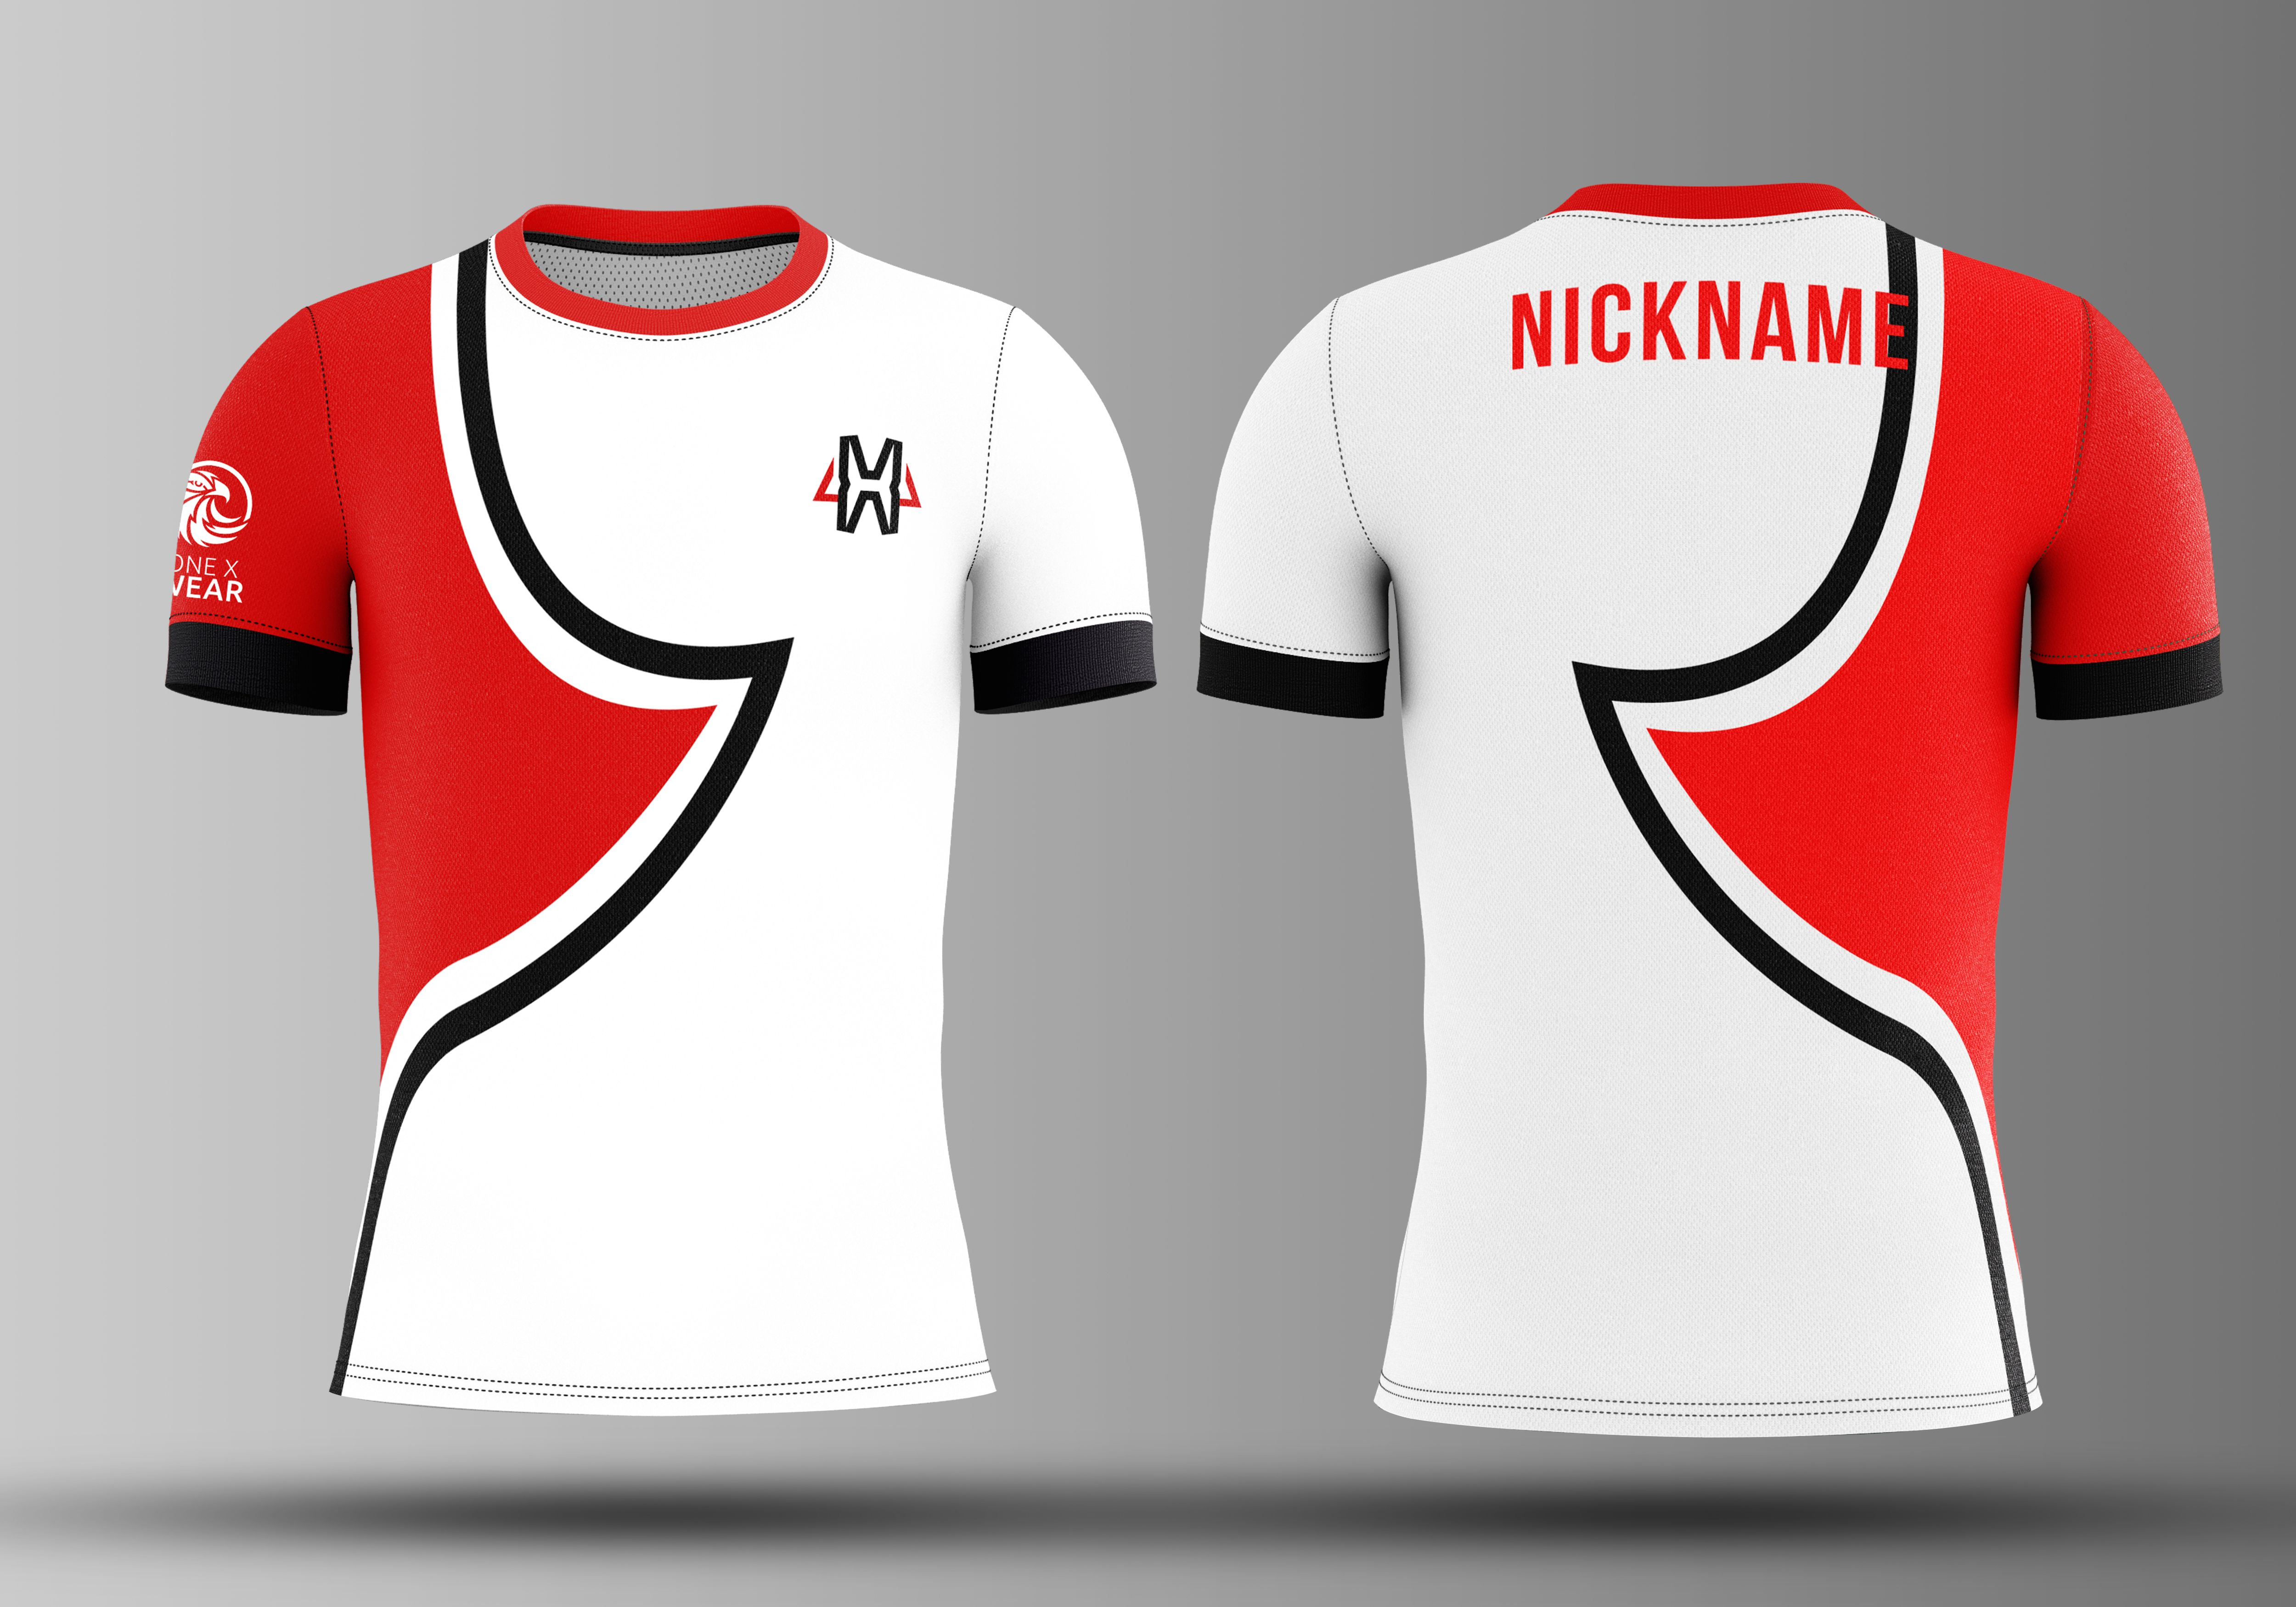 Download Under21 I Will Design Jersey For Esports Soccer Etc In 24 Hours For 10 On Fiverr Com Shirt Template Sport T Shirt Jersey